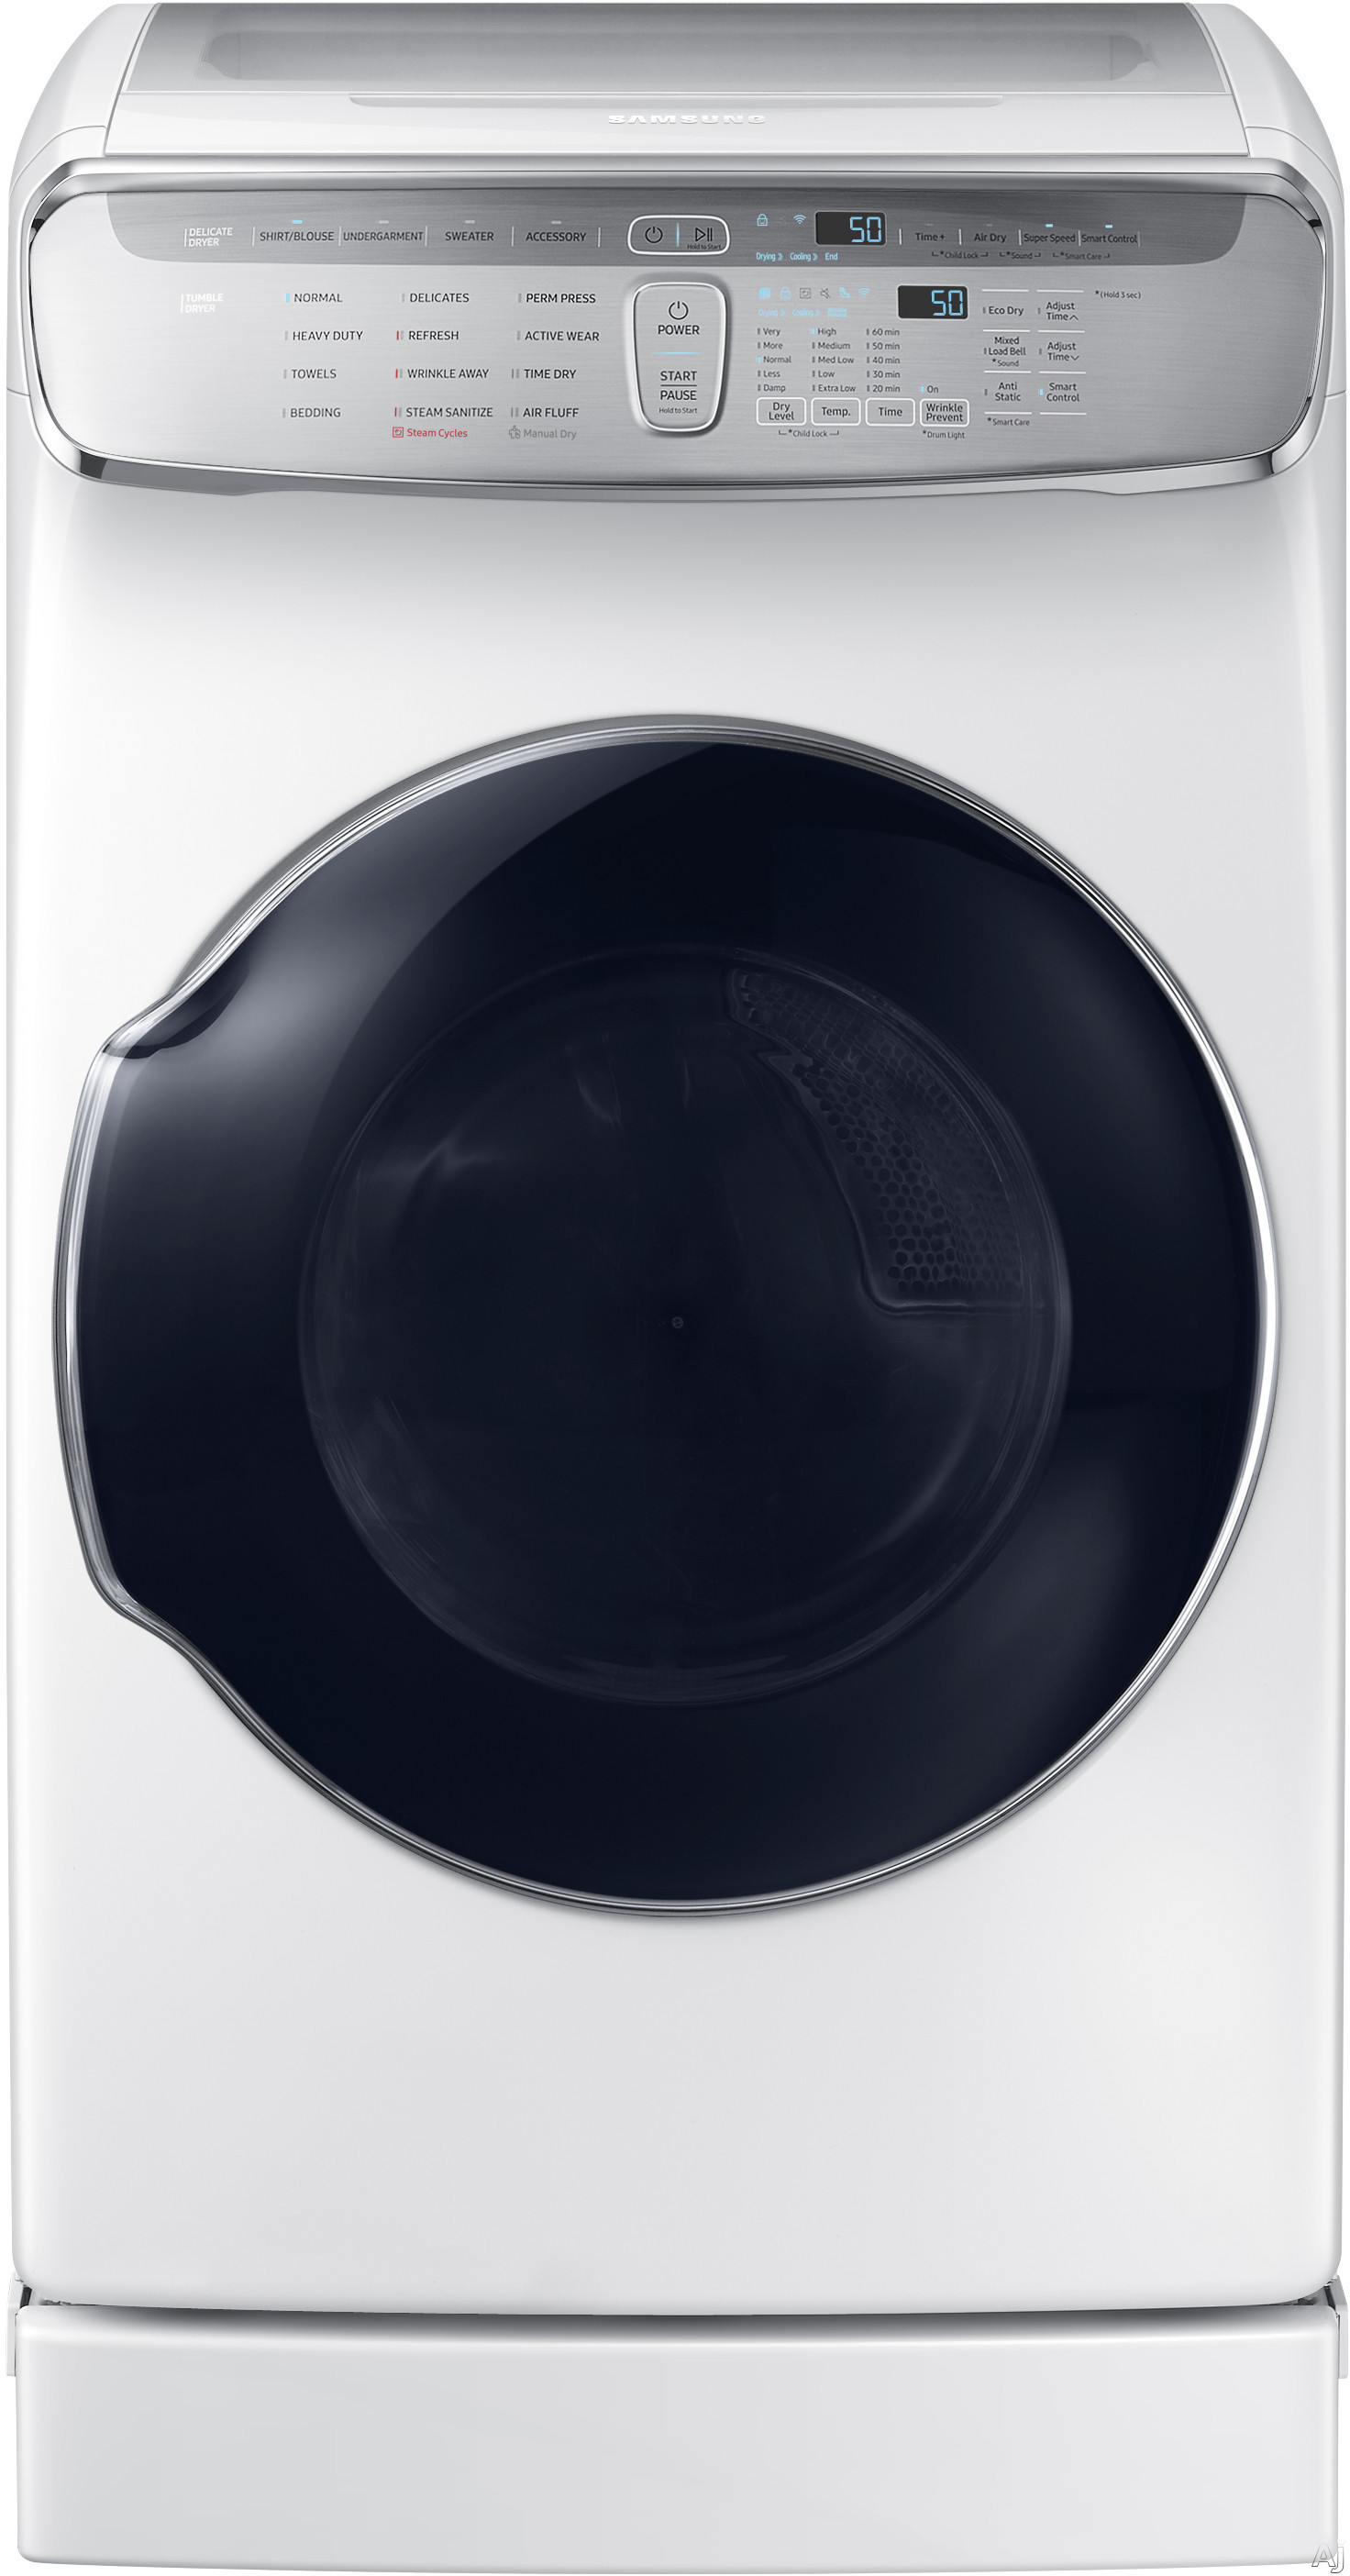 """Image of Samsung FlexWash DVE60M9900W 27 Inch FlexDryâ""""¢ Electric Dryer with Multi-Steamâ""""¢, Super Speed, Wi-Fi Connectivity, Sensor Dry, Drying Rack, 16 Dry Cycles, Wrinkle Prevent, Anti-Static Option, Smart Care and 7.5 cu. ft. Capacity: White"""